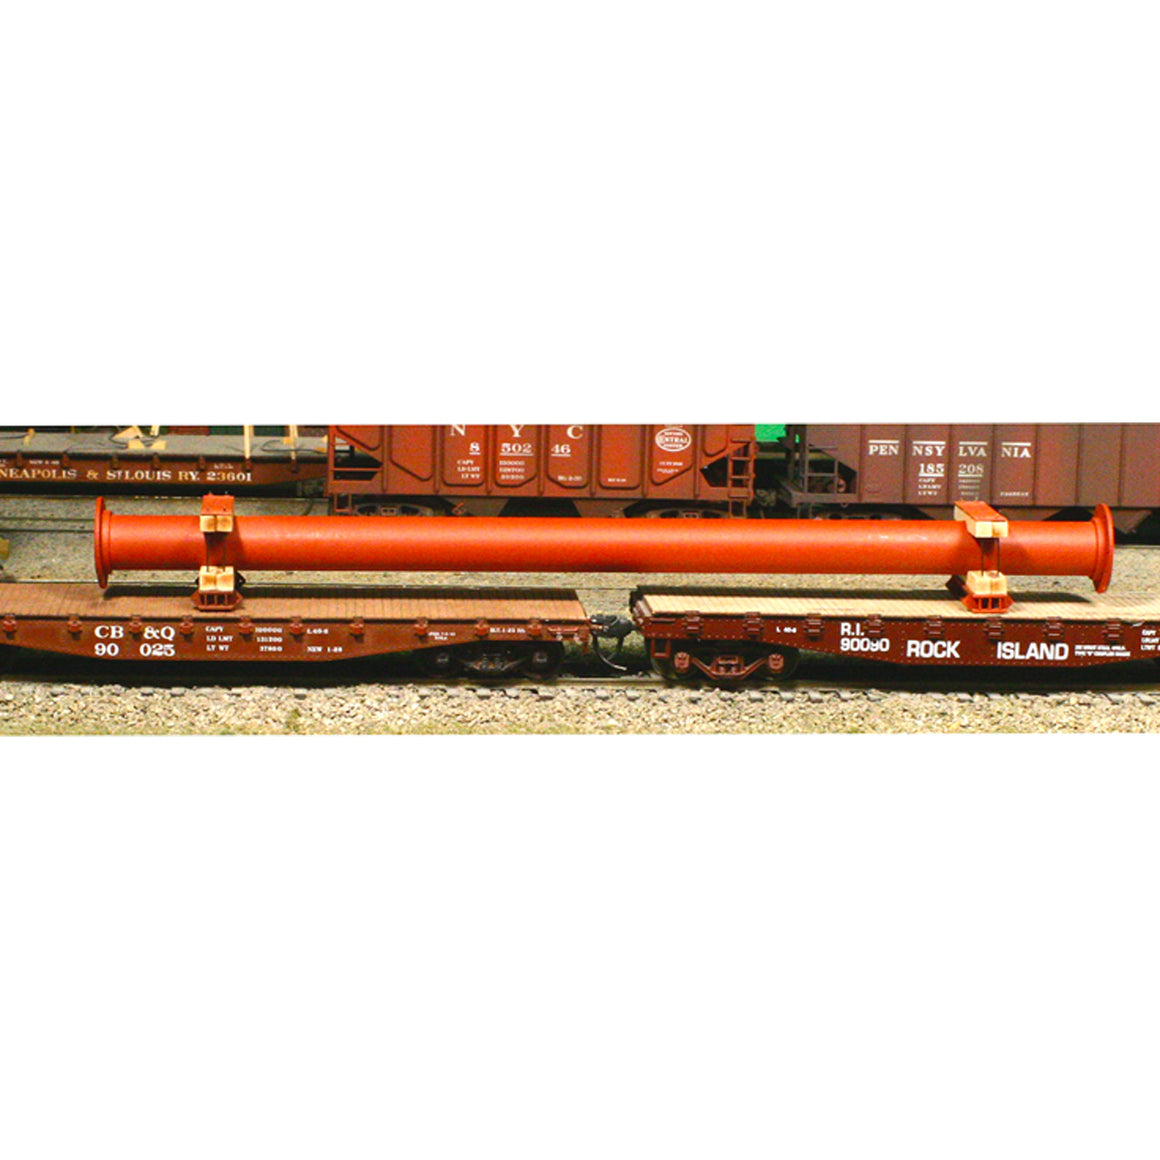 HO Scale: Flanged Pipe Load & Blocking - Kit